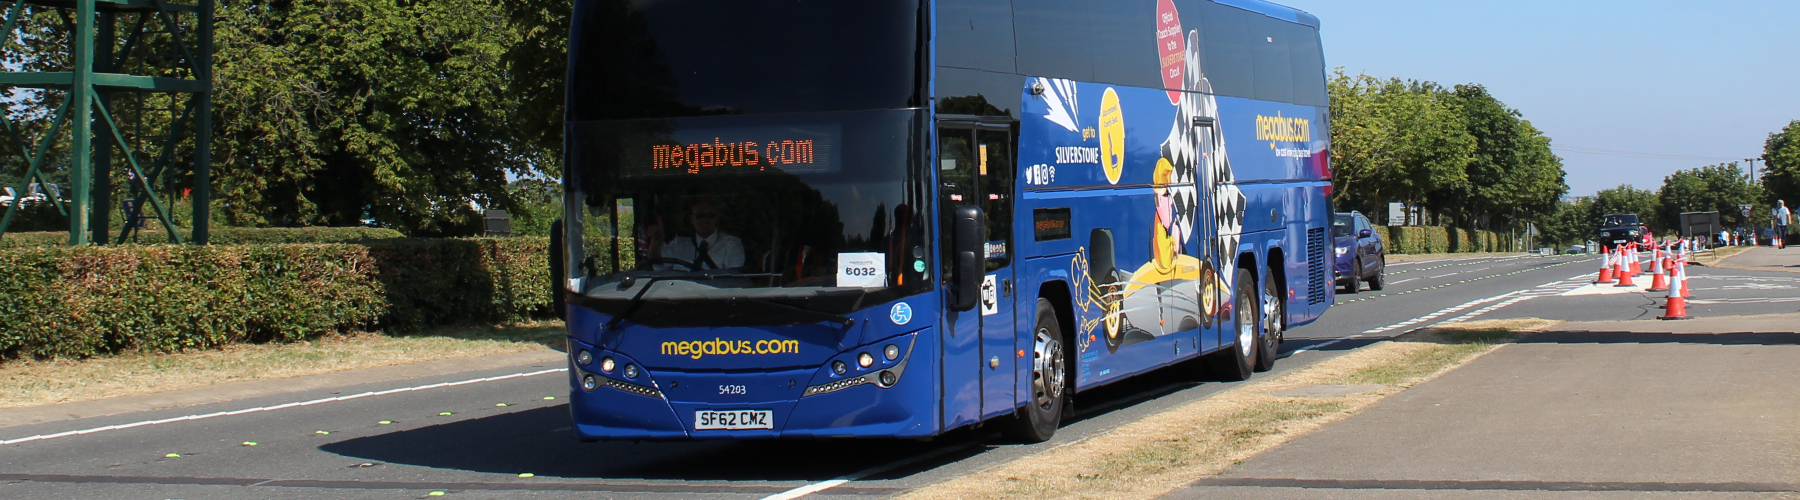 Stansted Car Village Shuttle Travel To Silverstone By Coach Megabus Uk